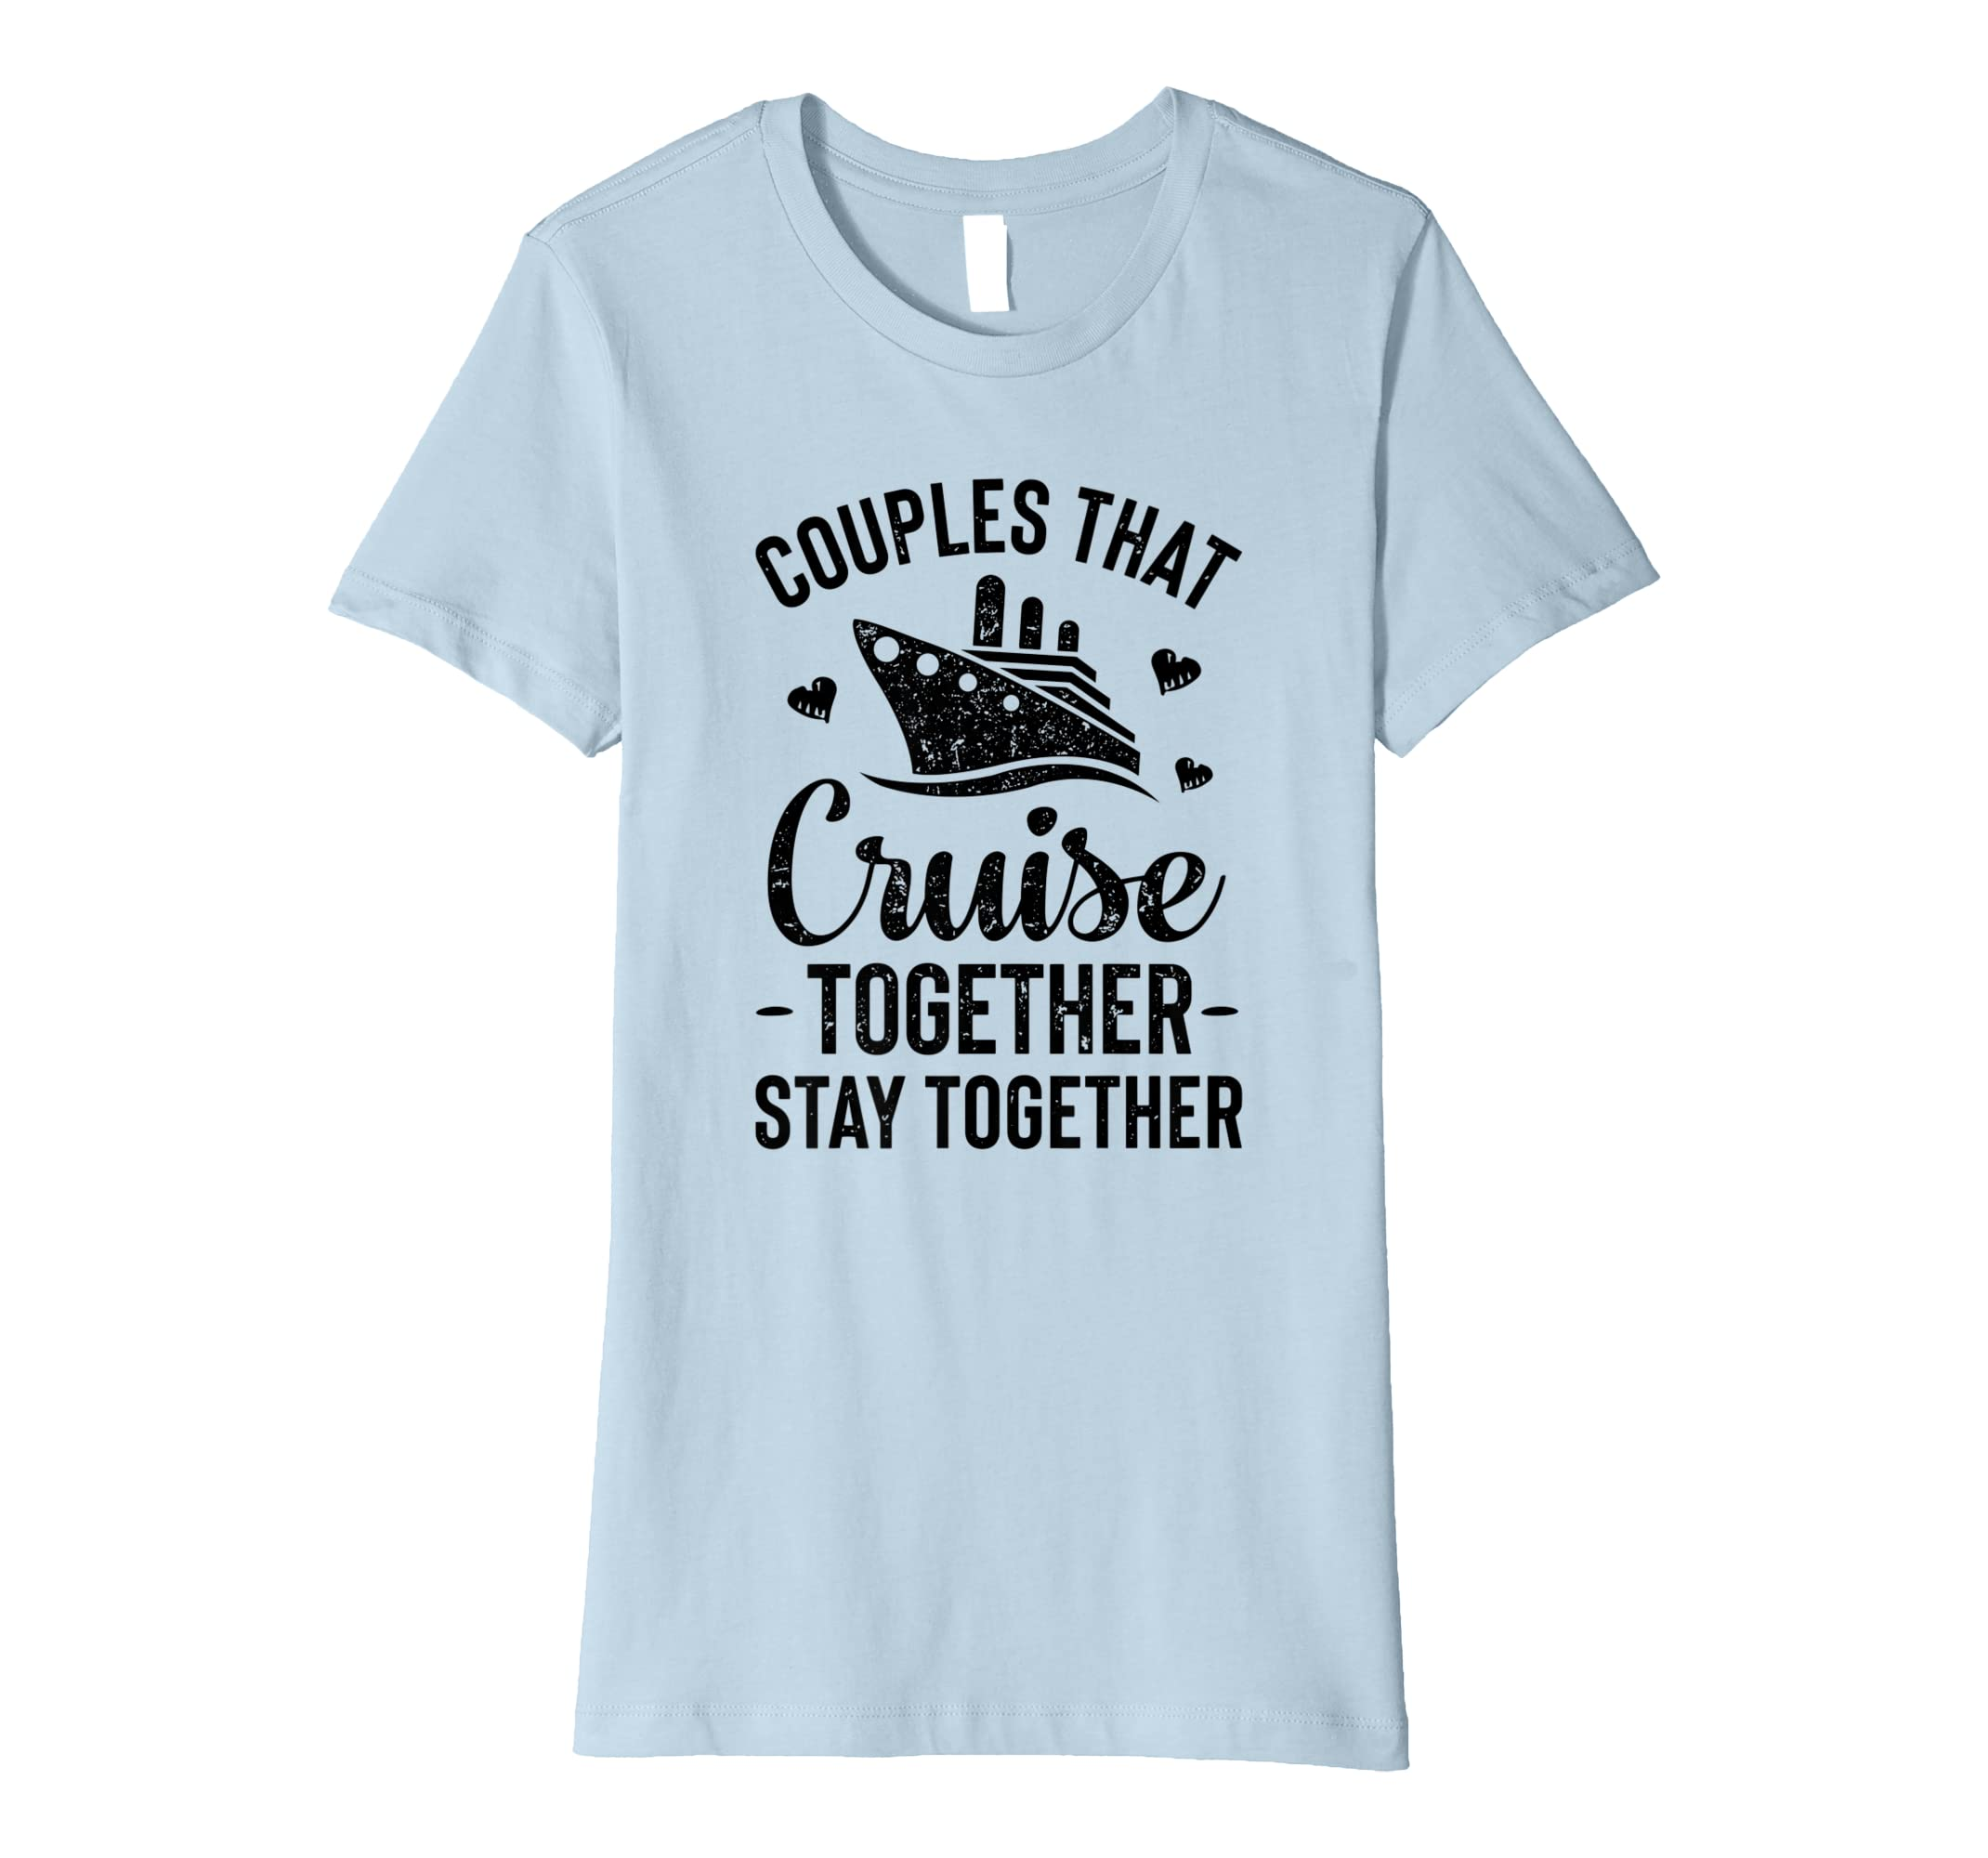 0e4459de Amazon.com: Couples That Cruise Together Stay Together T shirt Matching:  Clothing